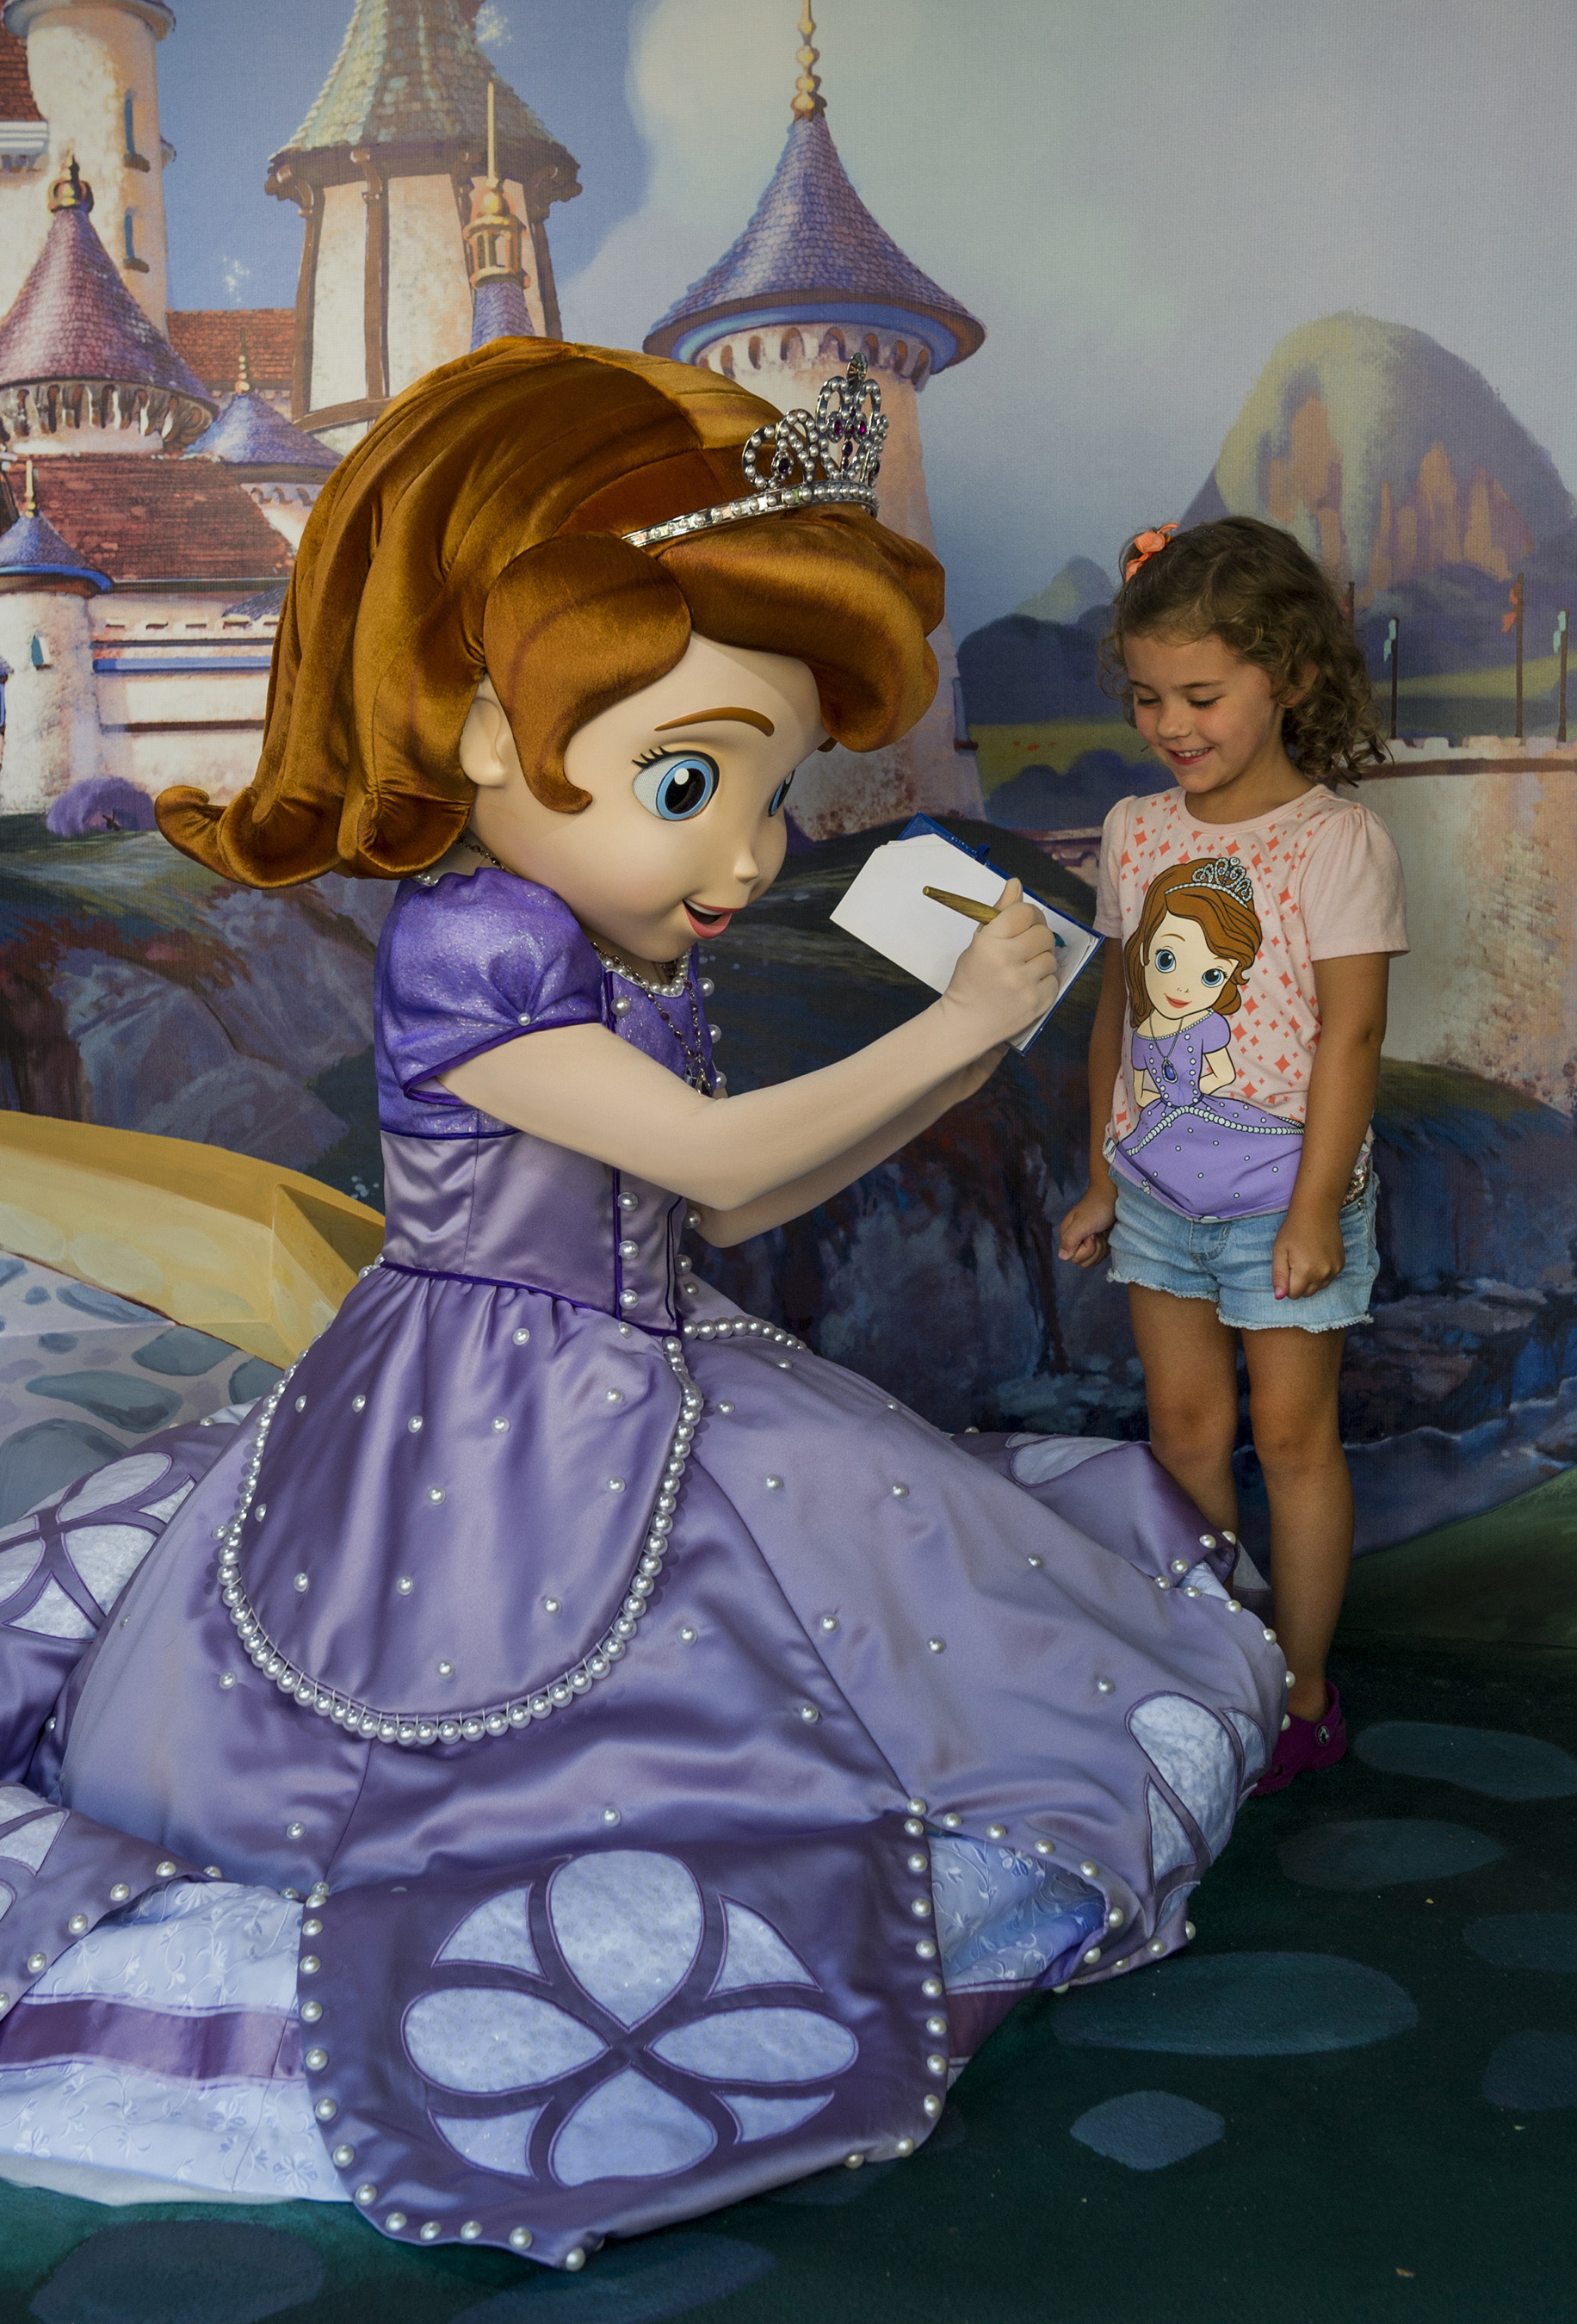 Where to Meet all the Walt Disney World Princesses, a guide featured by top US Disney blogger, Marcie and the Mouse: Disney Junior fans will love meeting Sofia the First at Walt Disney World